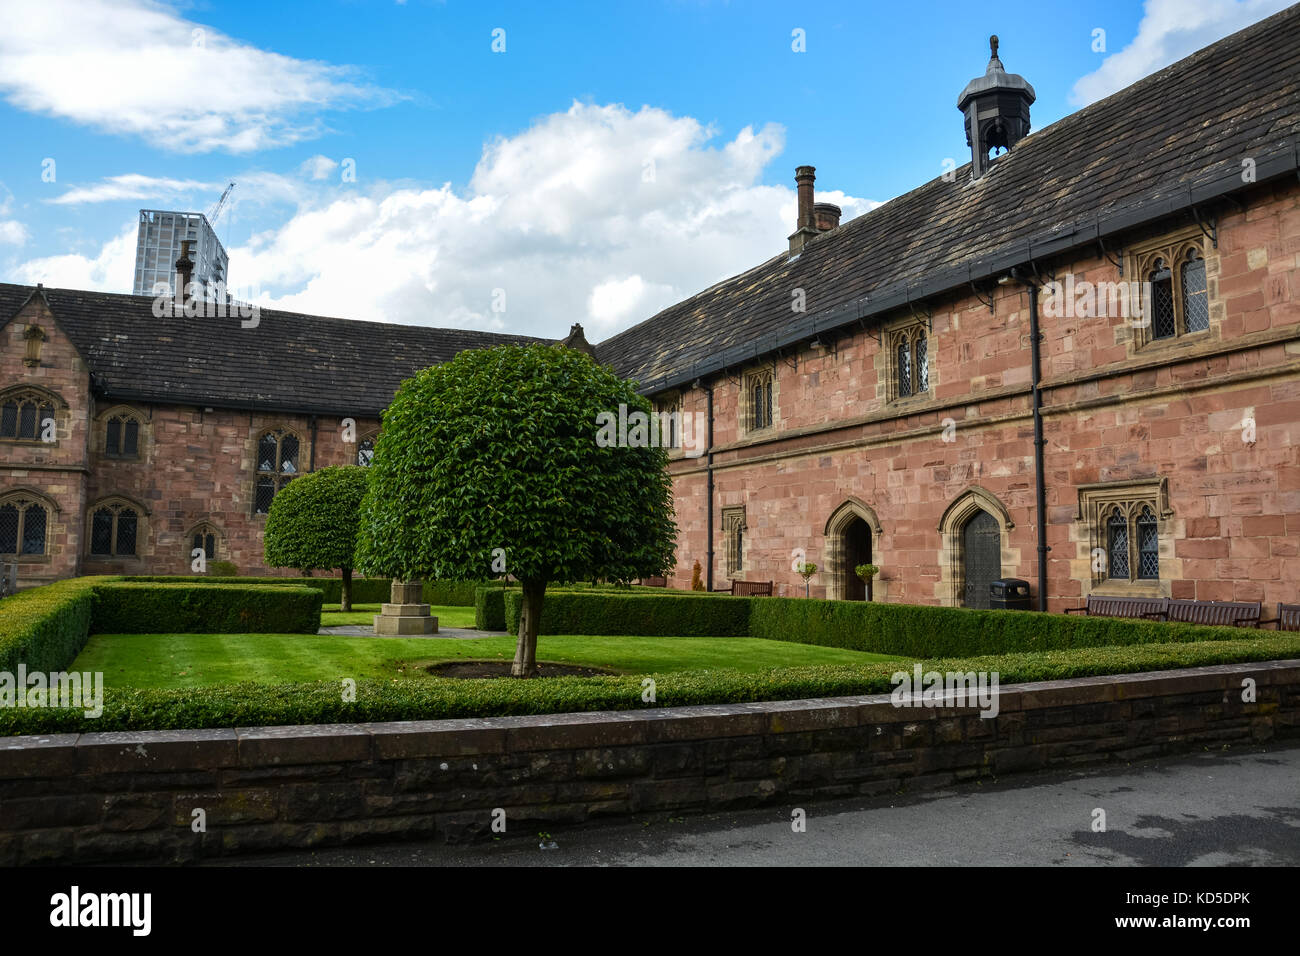 A nice square with trees and hedges next to Chetham's library in Manchester on a sunny day - Stock Image